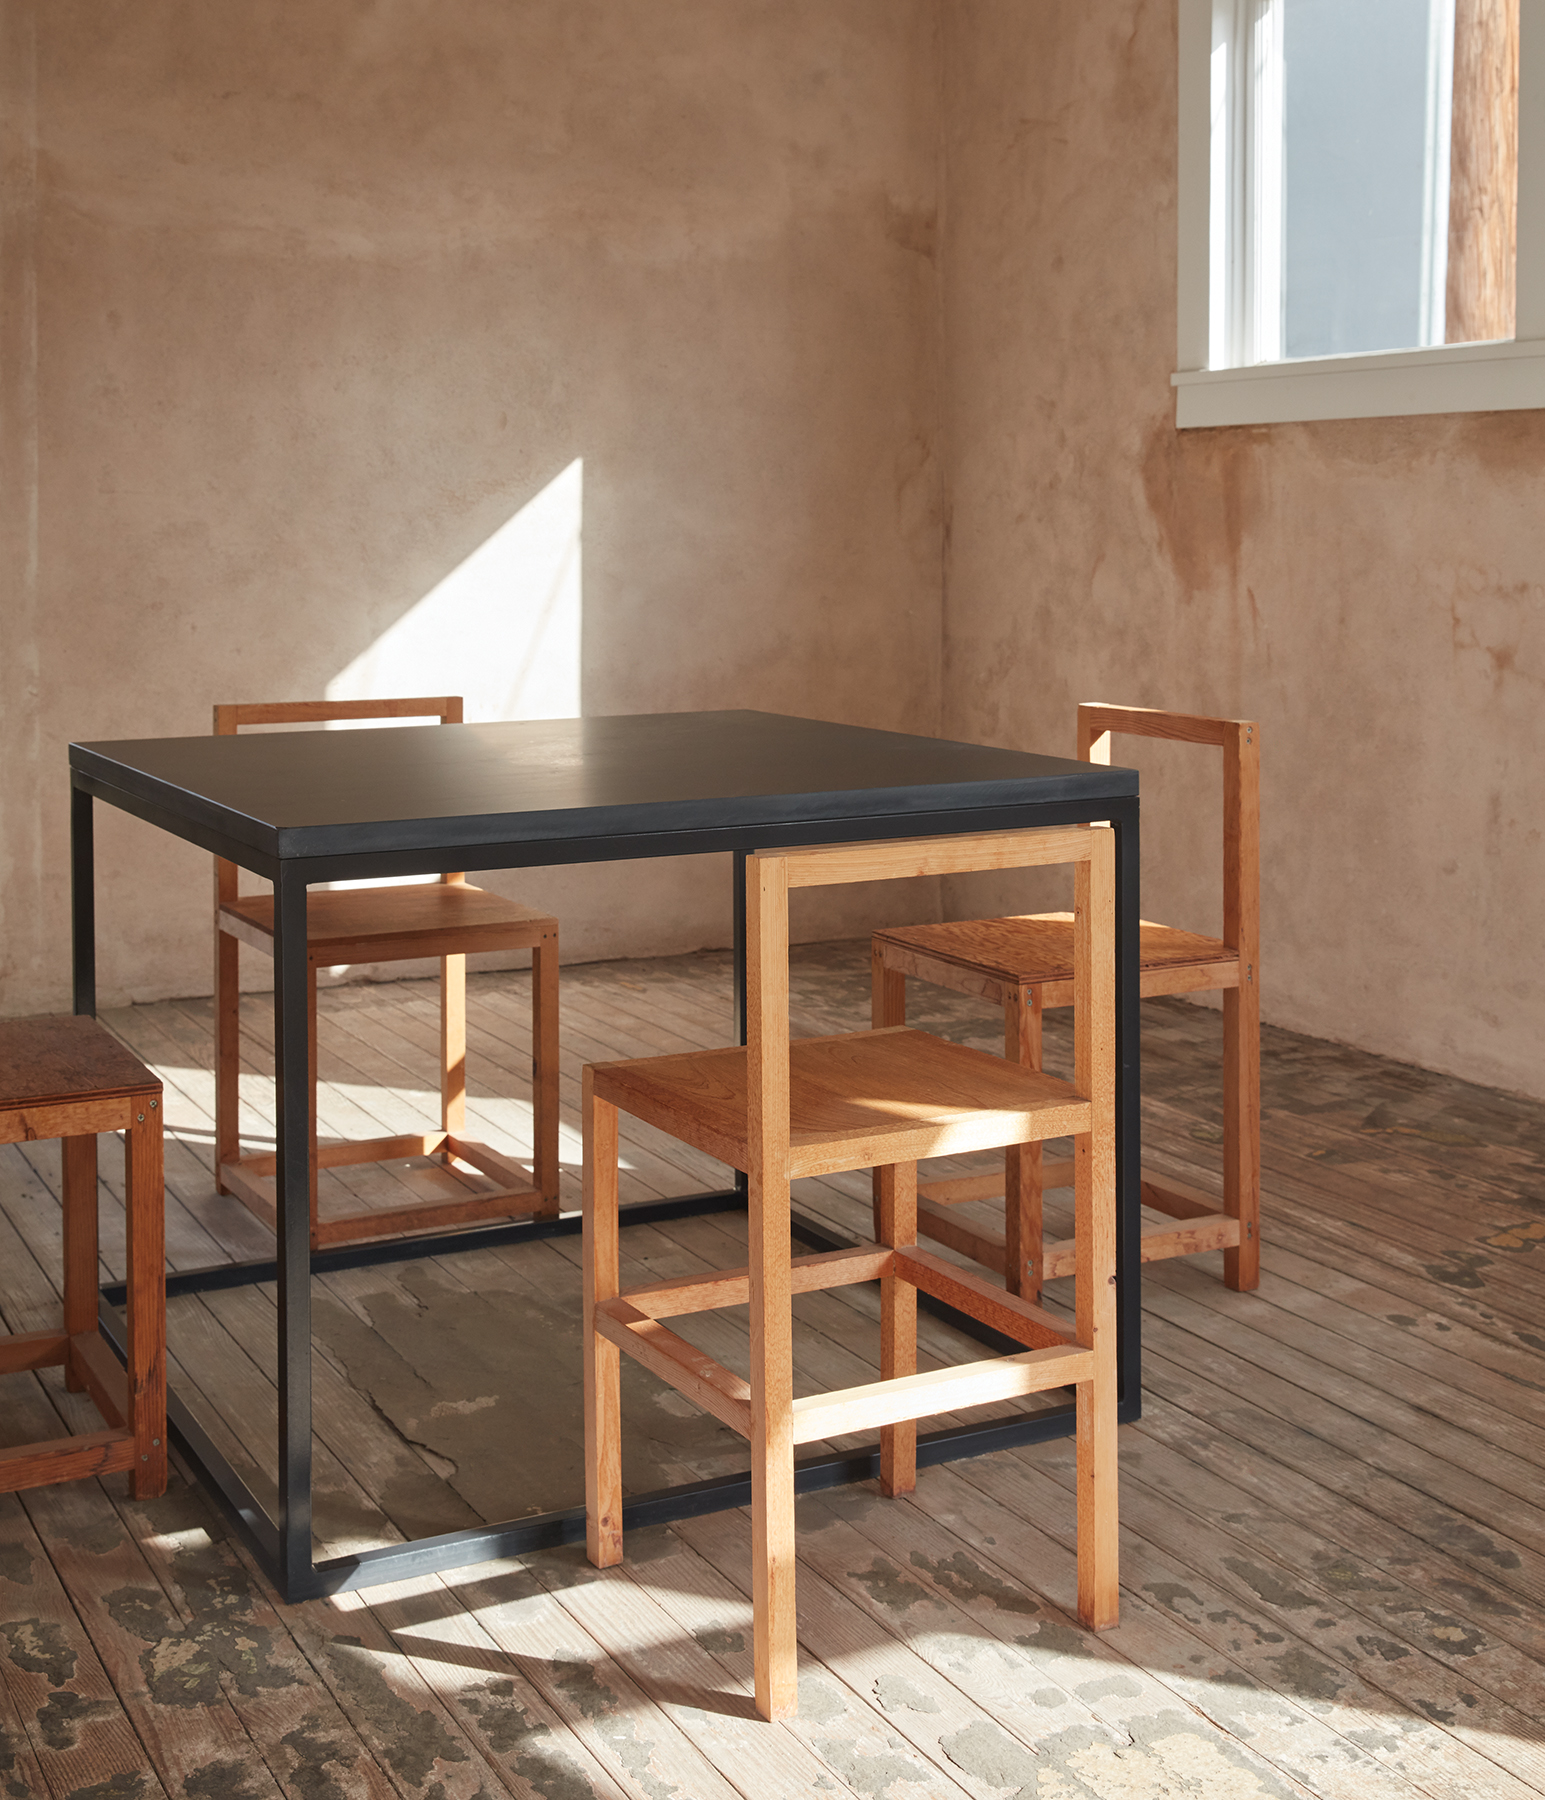 Purchase Furniture: Donald Judd-designed Furniture Will Soon Be Available For